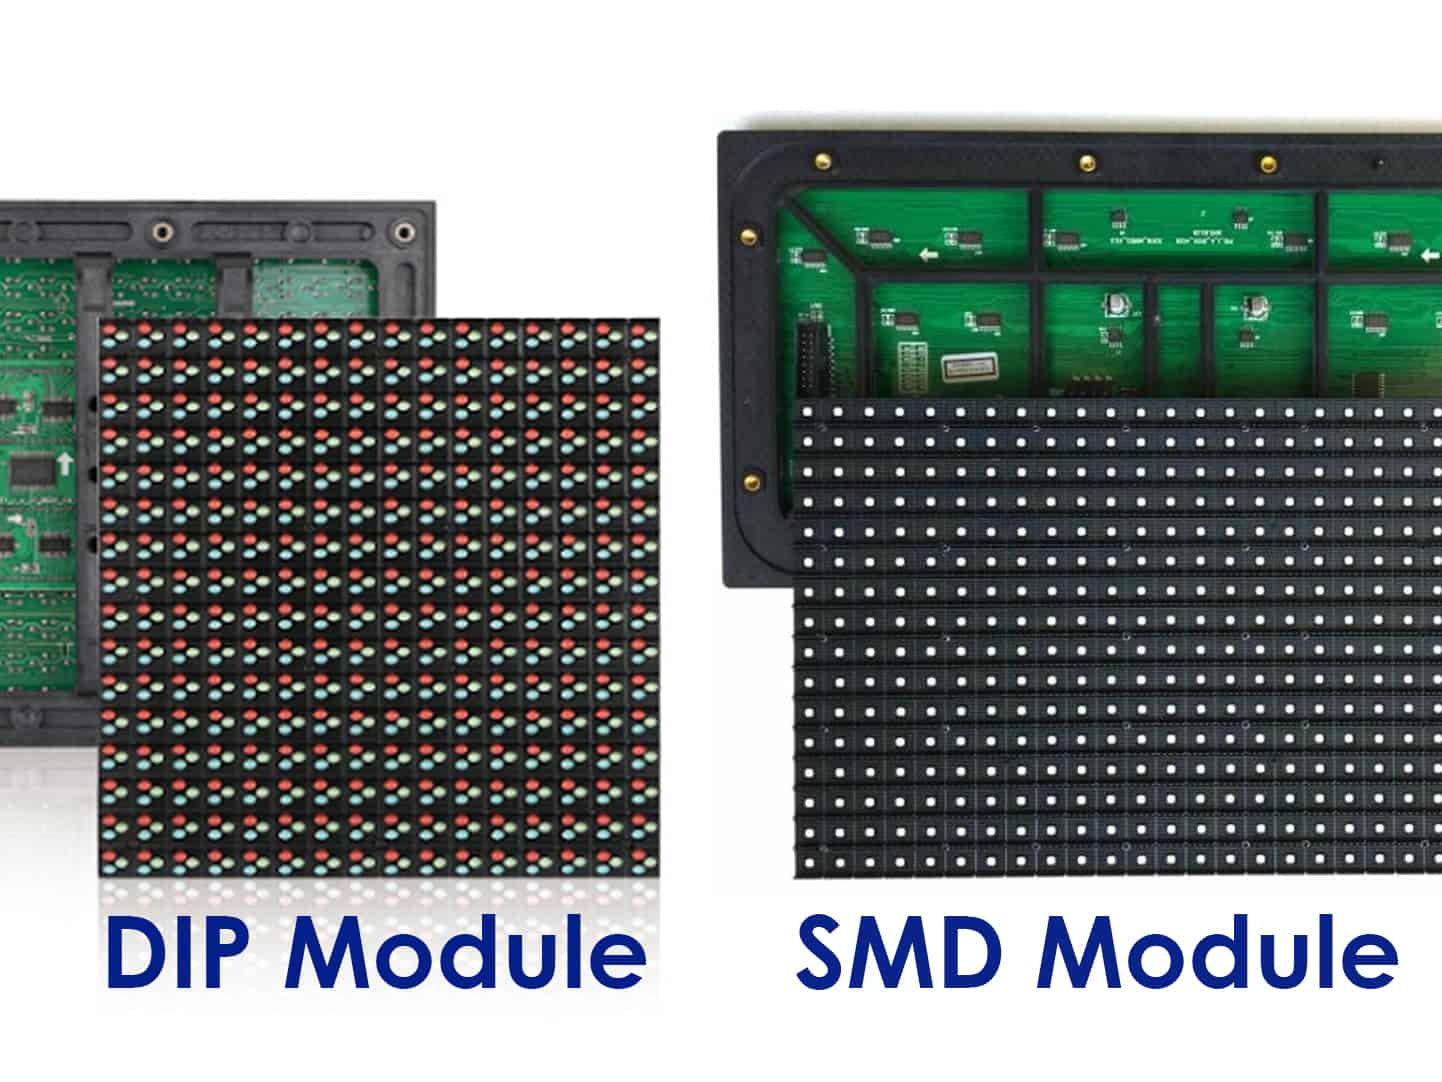 LED Outdoor ระหว่าง SMD และ DIP